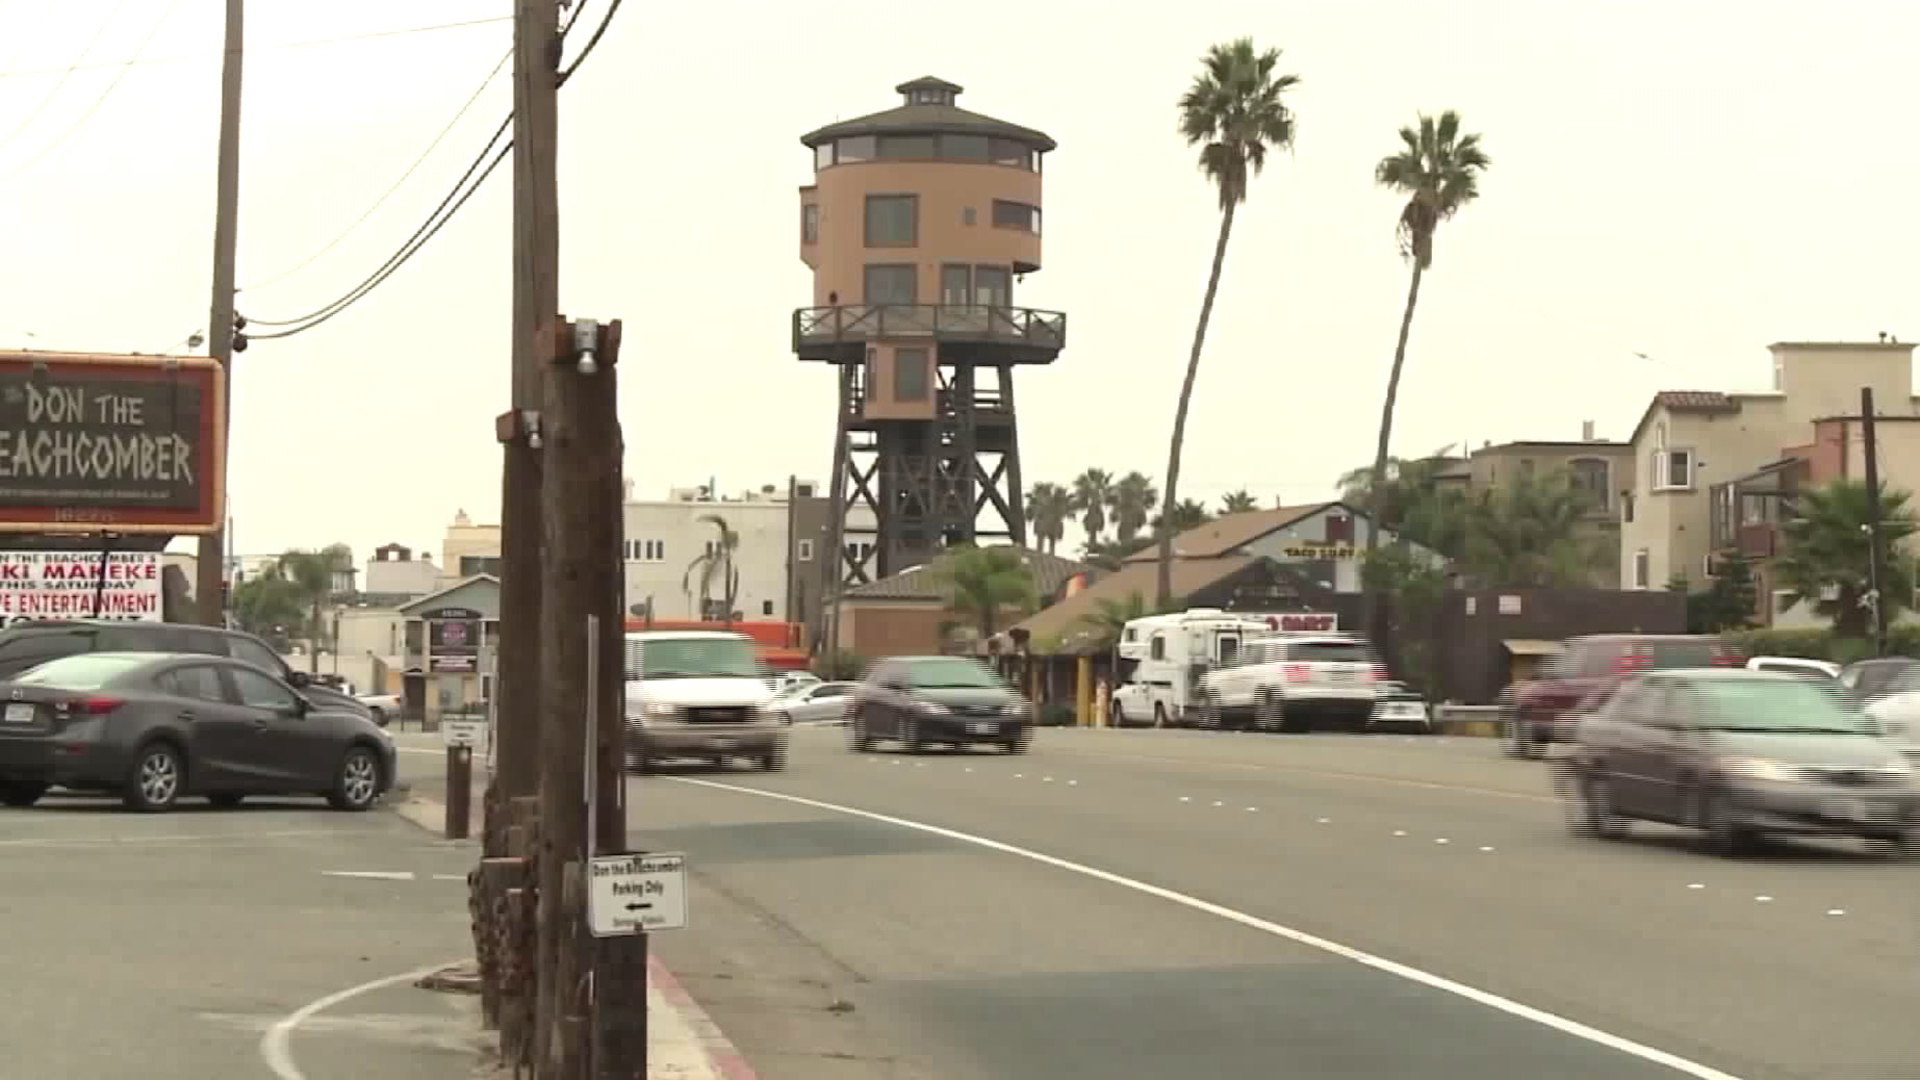 The iconic water tower house in Sunset Beach is seen in December 2016. (KTLA)